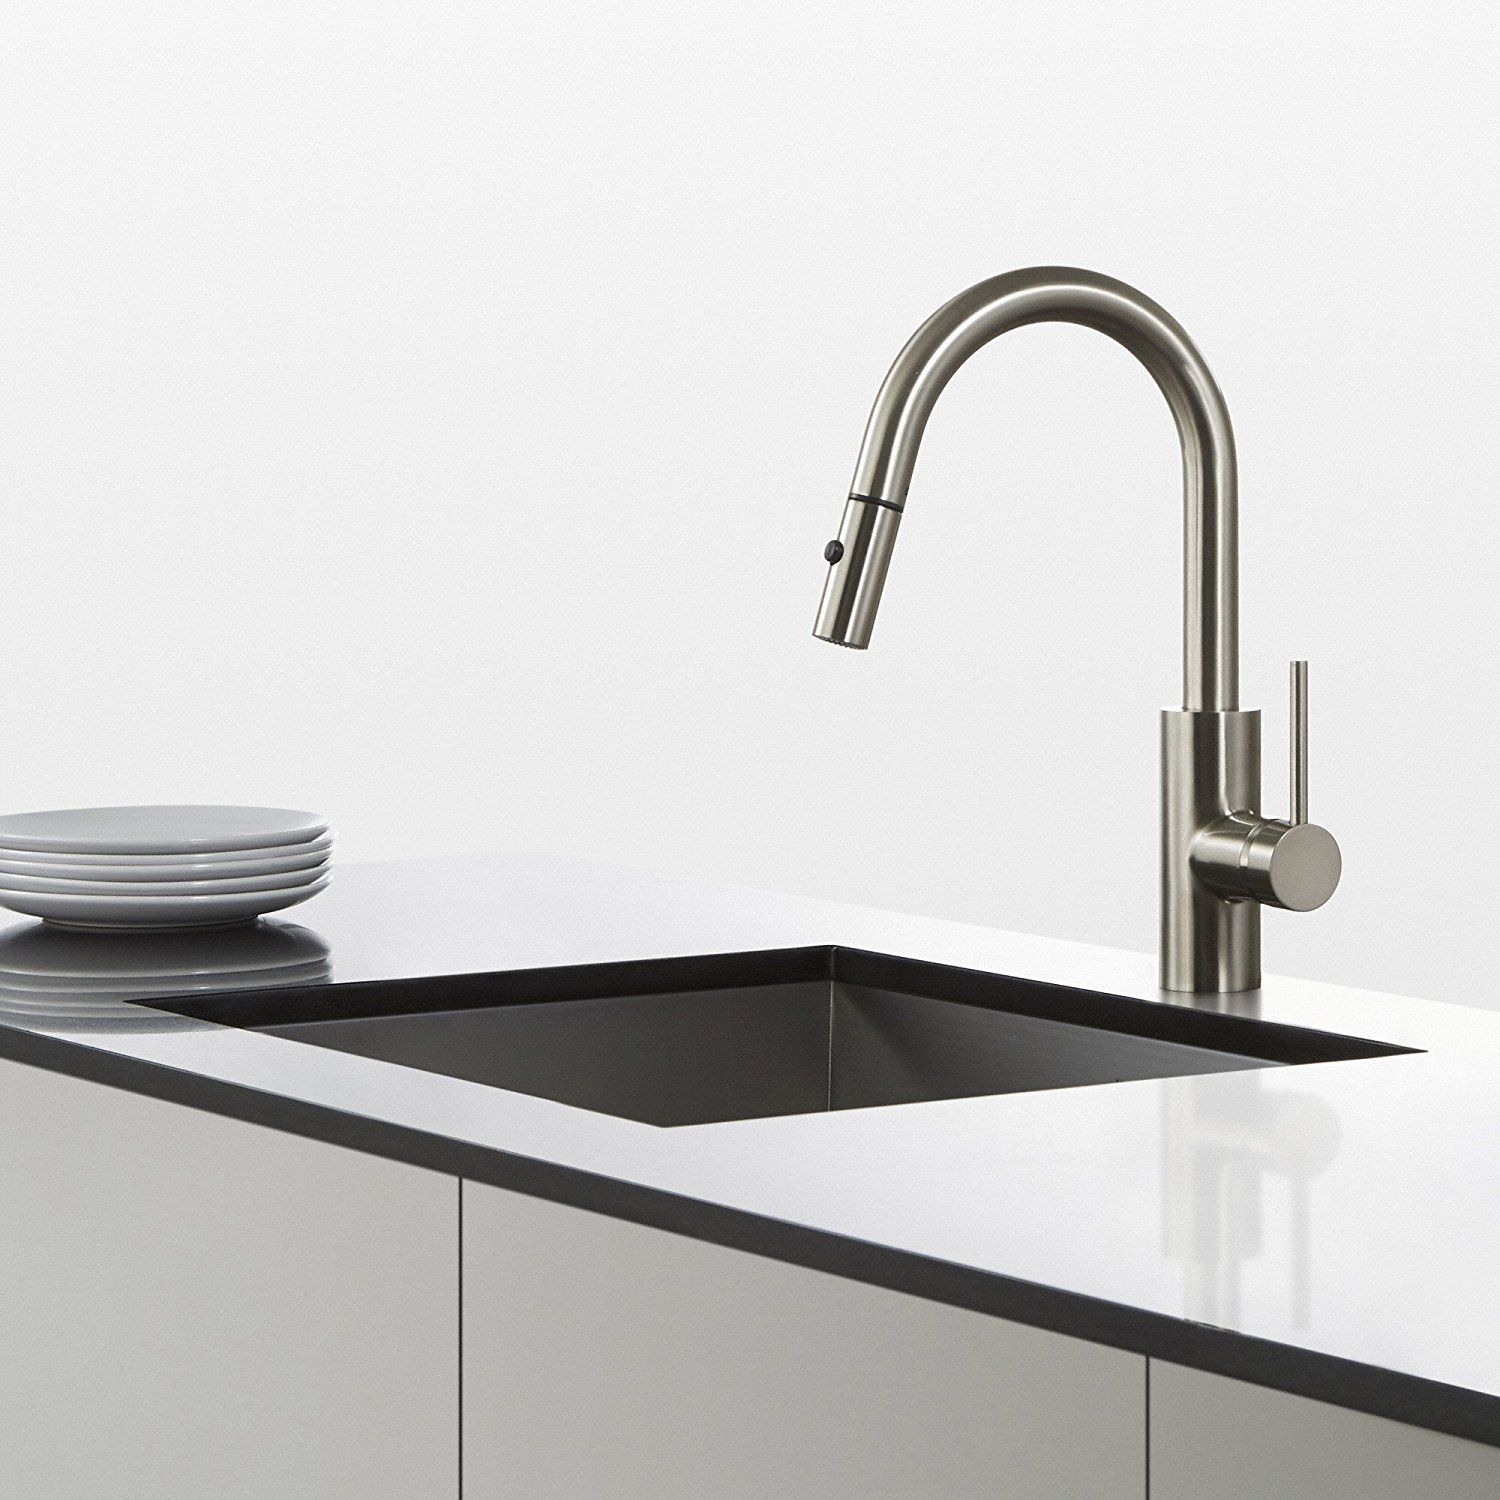 Pin by The Home Adviser on Best Kraus kitchen faucets | Pinterest ...